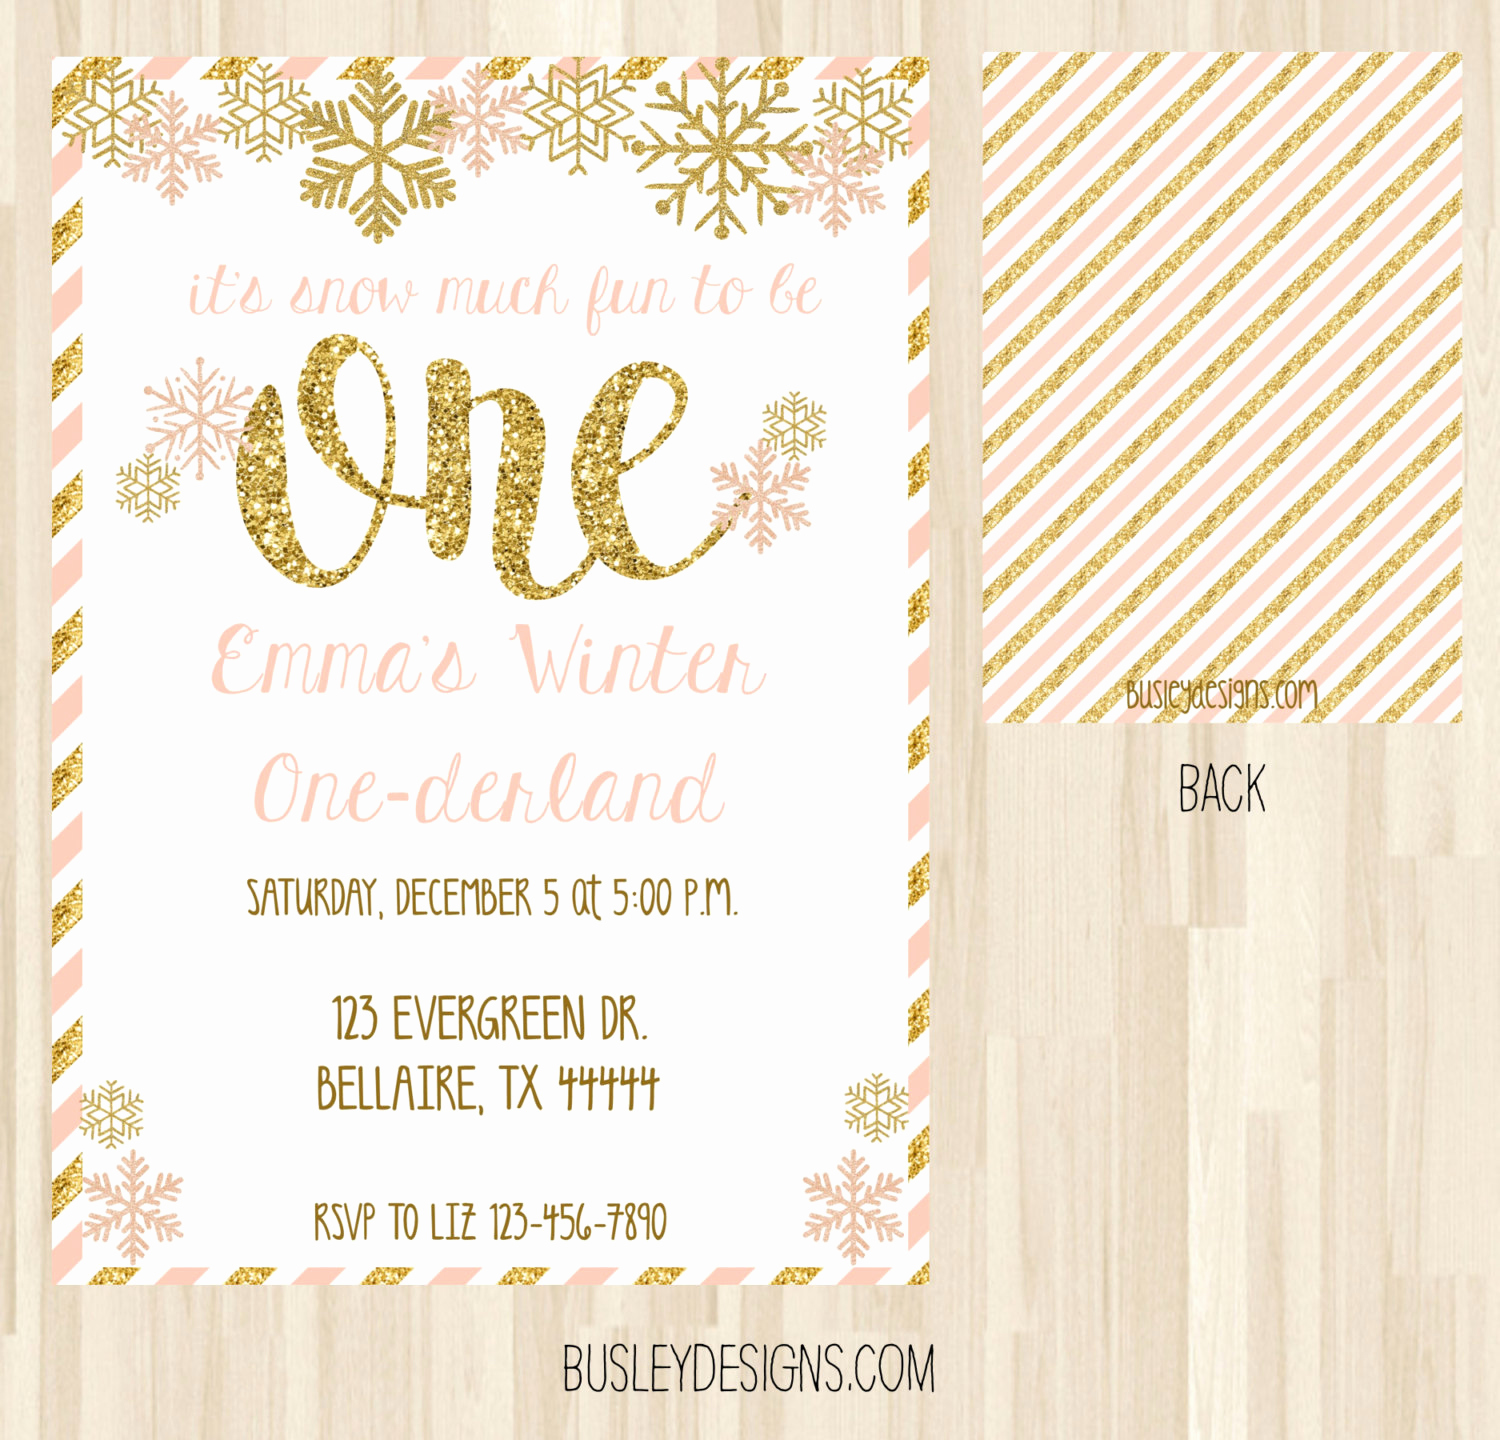 Winter One Derland Invitation Wording Fresh Winter Ederland Invitation Winter Wonderland by